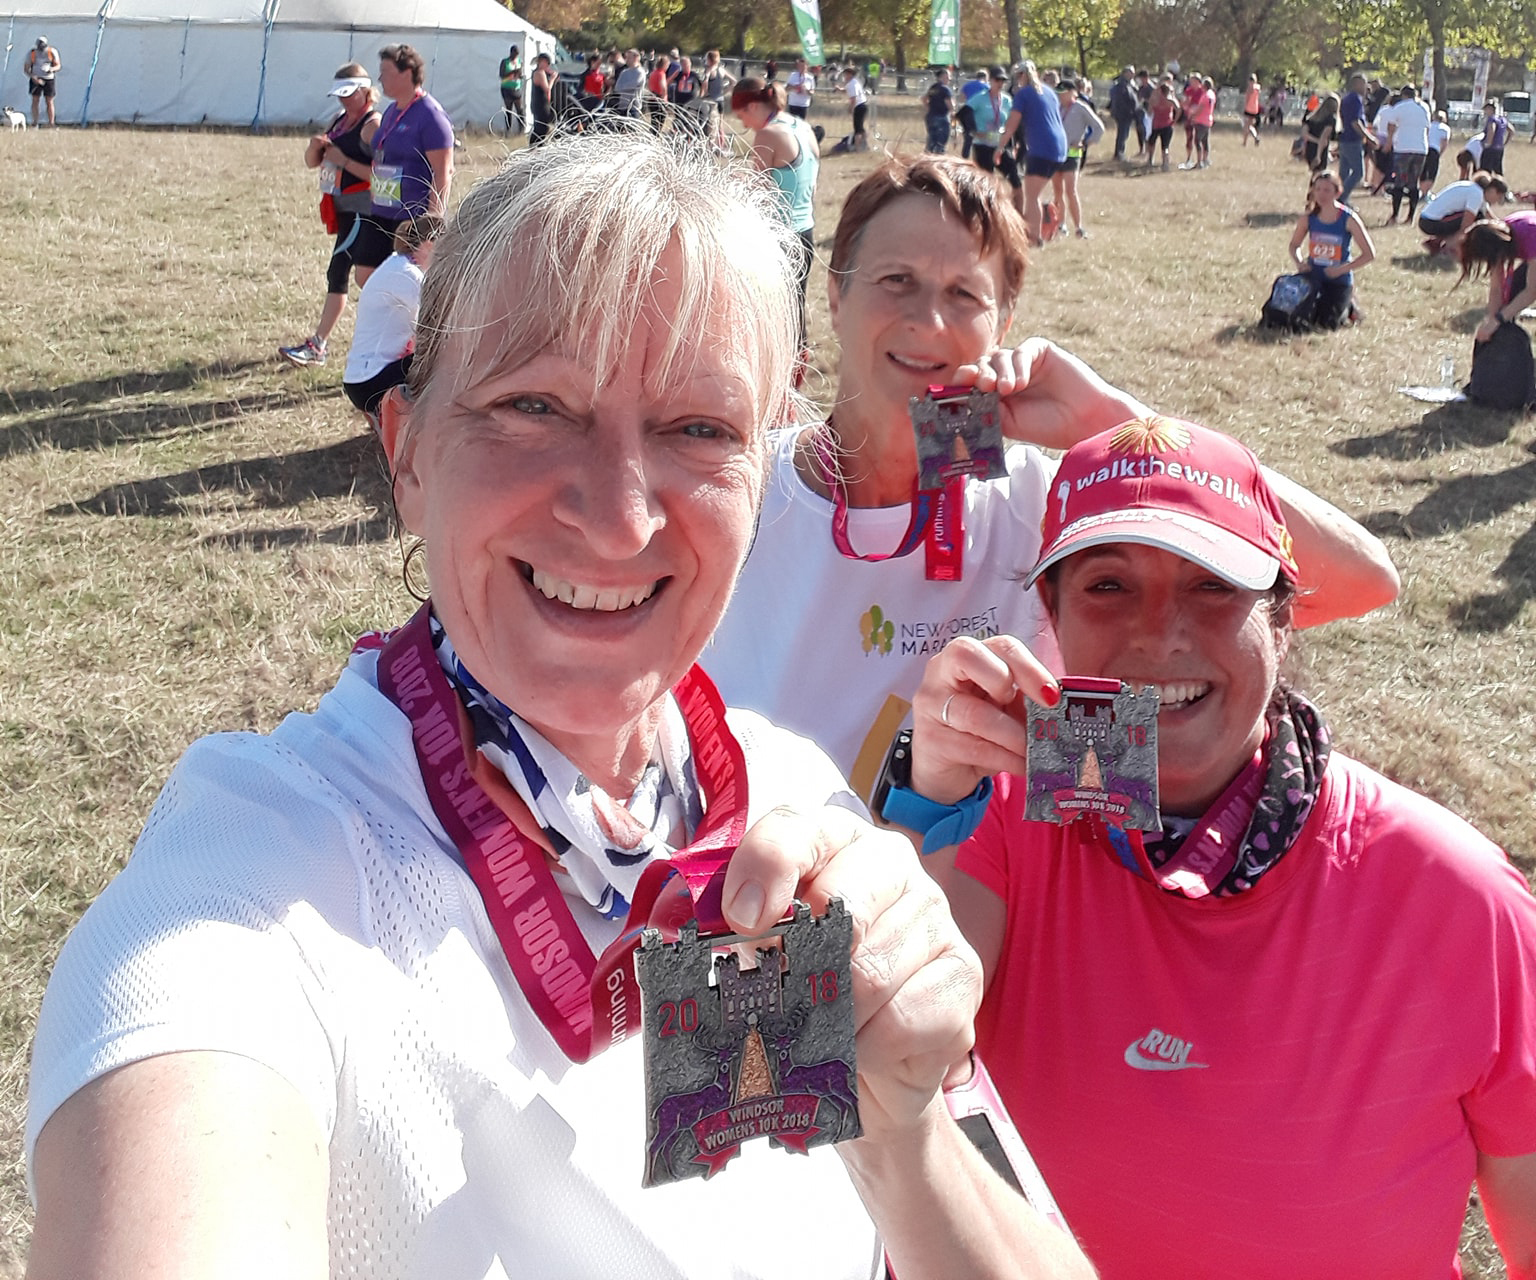 Poole AC at Windsor running for women 10k